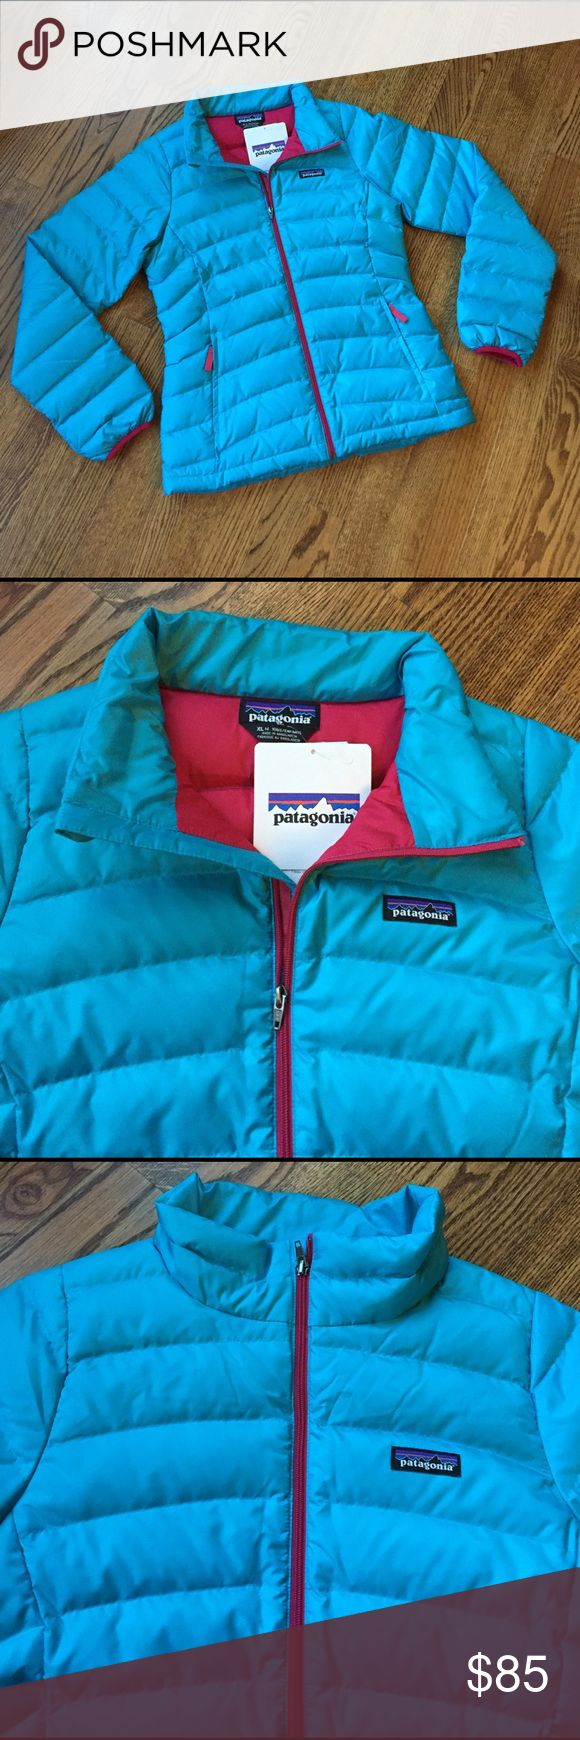 NWT Girls Patagonia down sweater jacket NWT Girls down sweater jacket by Patagonia. Size kids XL (14). Insulated with traceable down. Patagonia Jackets & Coats